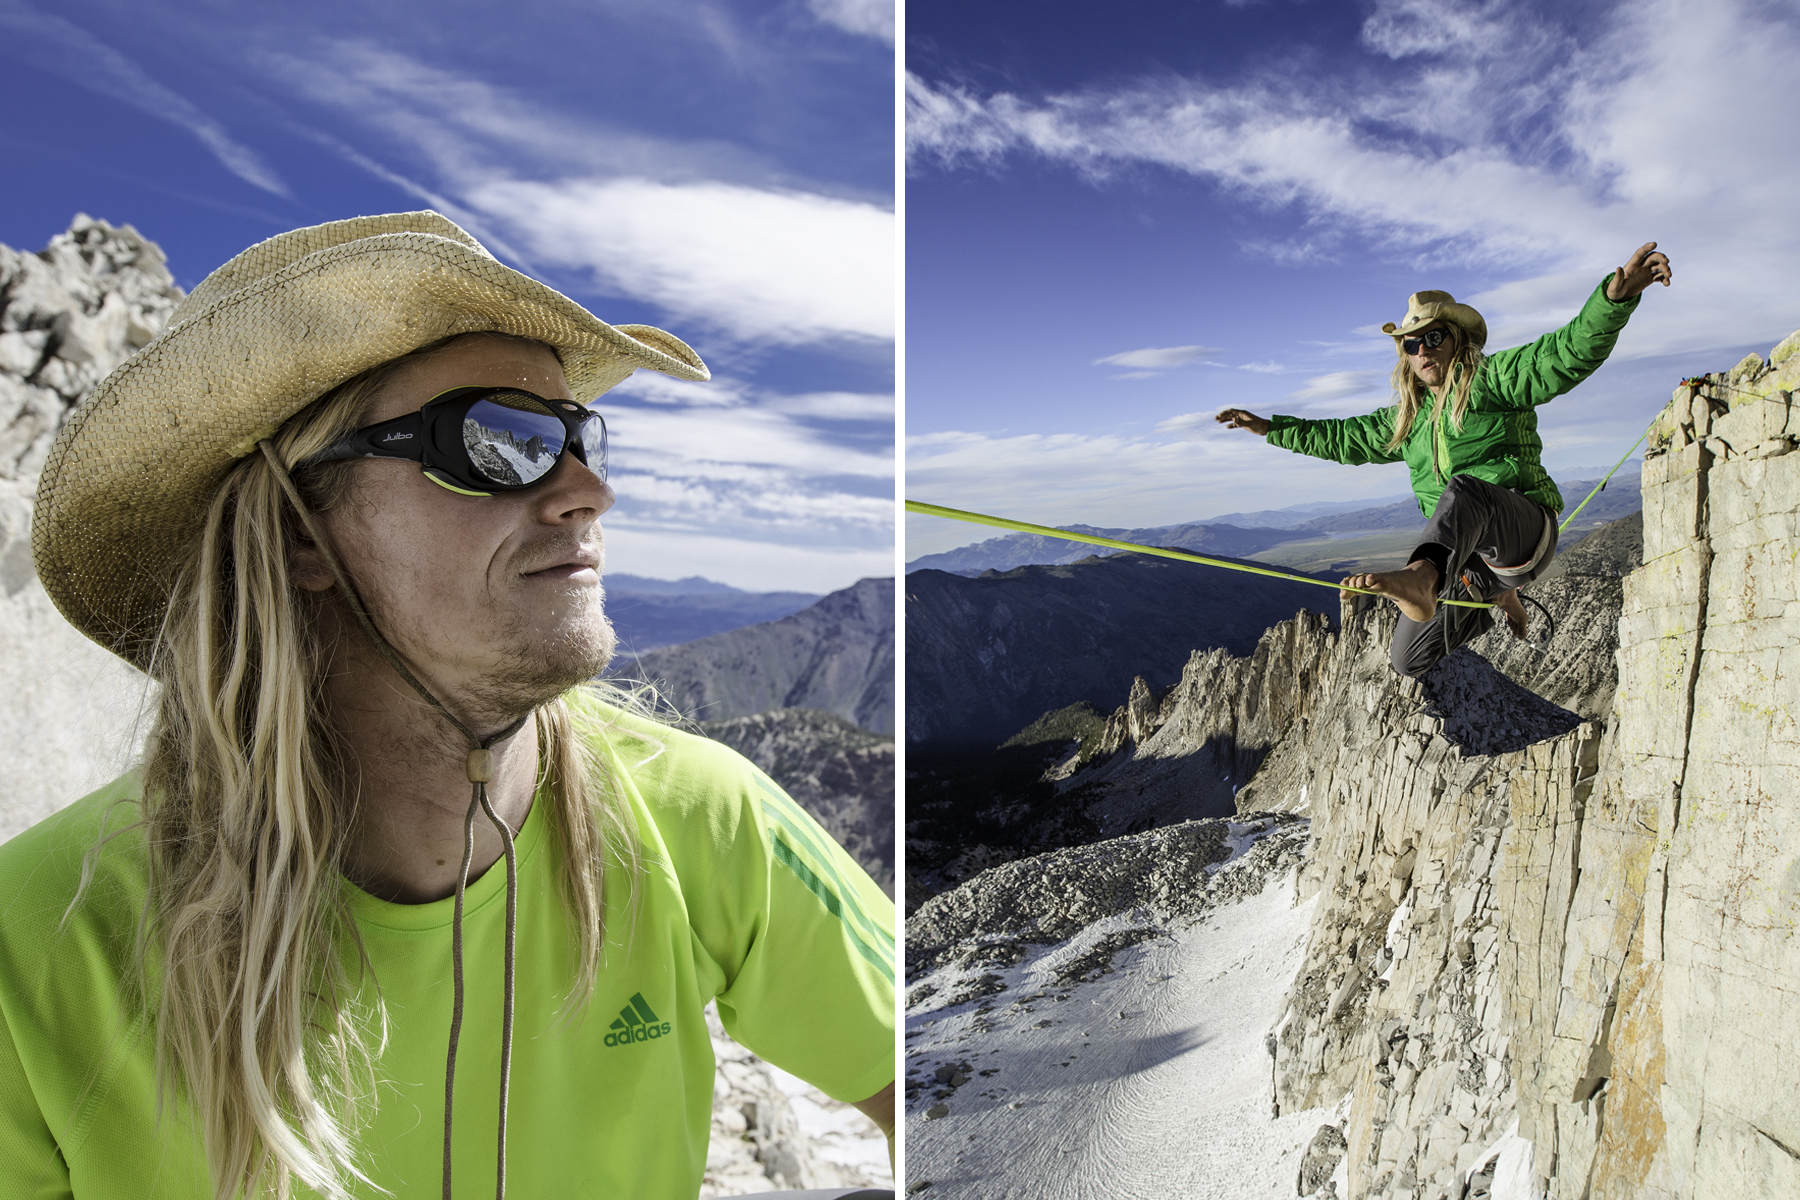 Preston Bruce Alden rigged and walked the first known highline in the Sawtooth's located outside of Bridgeport, CA. Preston looked at these peaks everyday for 2 years while working as a wildlife biologist in Bridgeport. You might say that daydreaming of this line is what started his obsession with rigging alpine high lines in the Eastern Sierra.